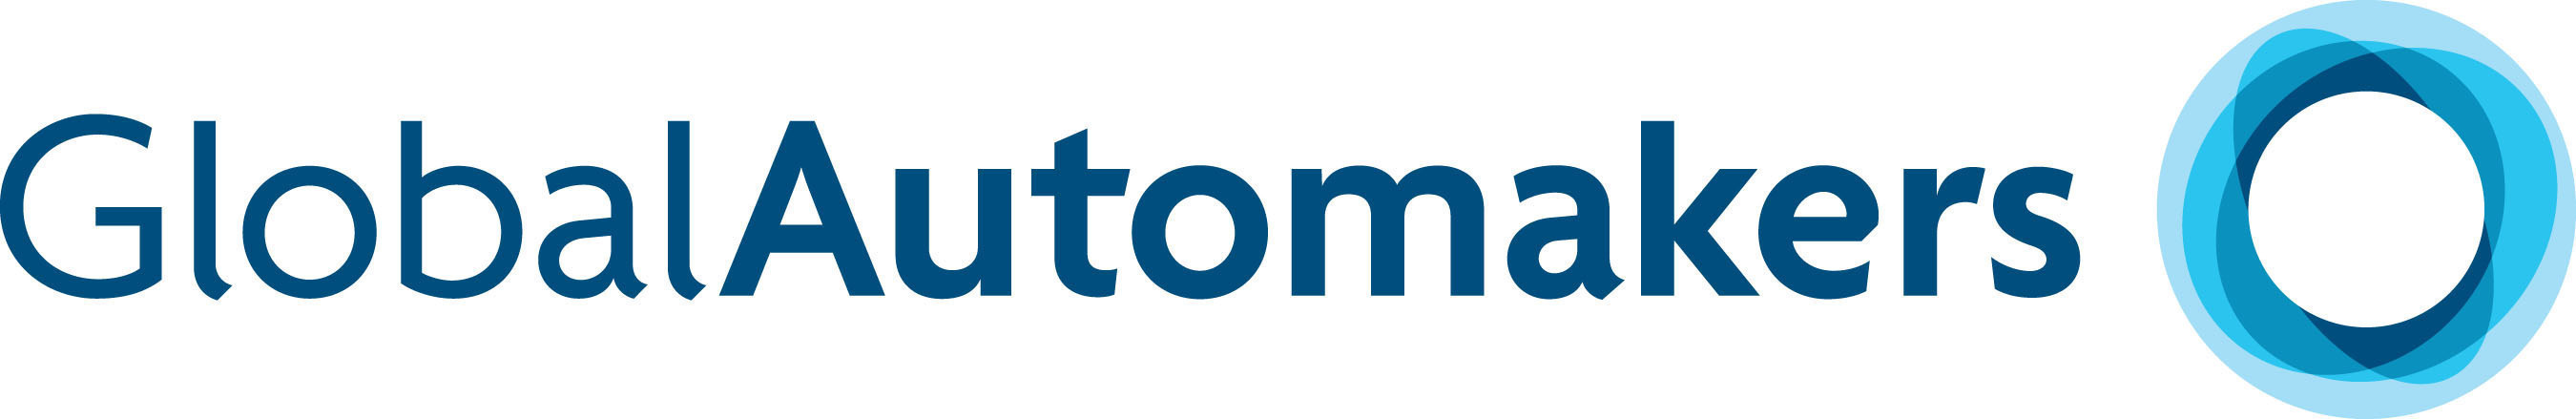 Global Automakers logo